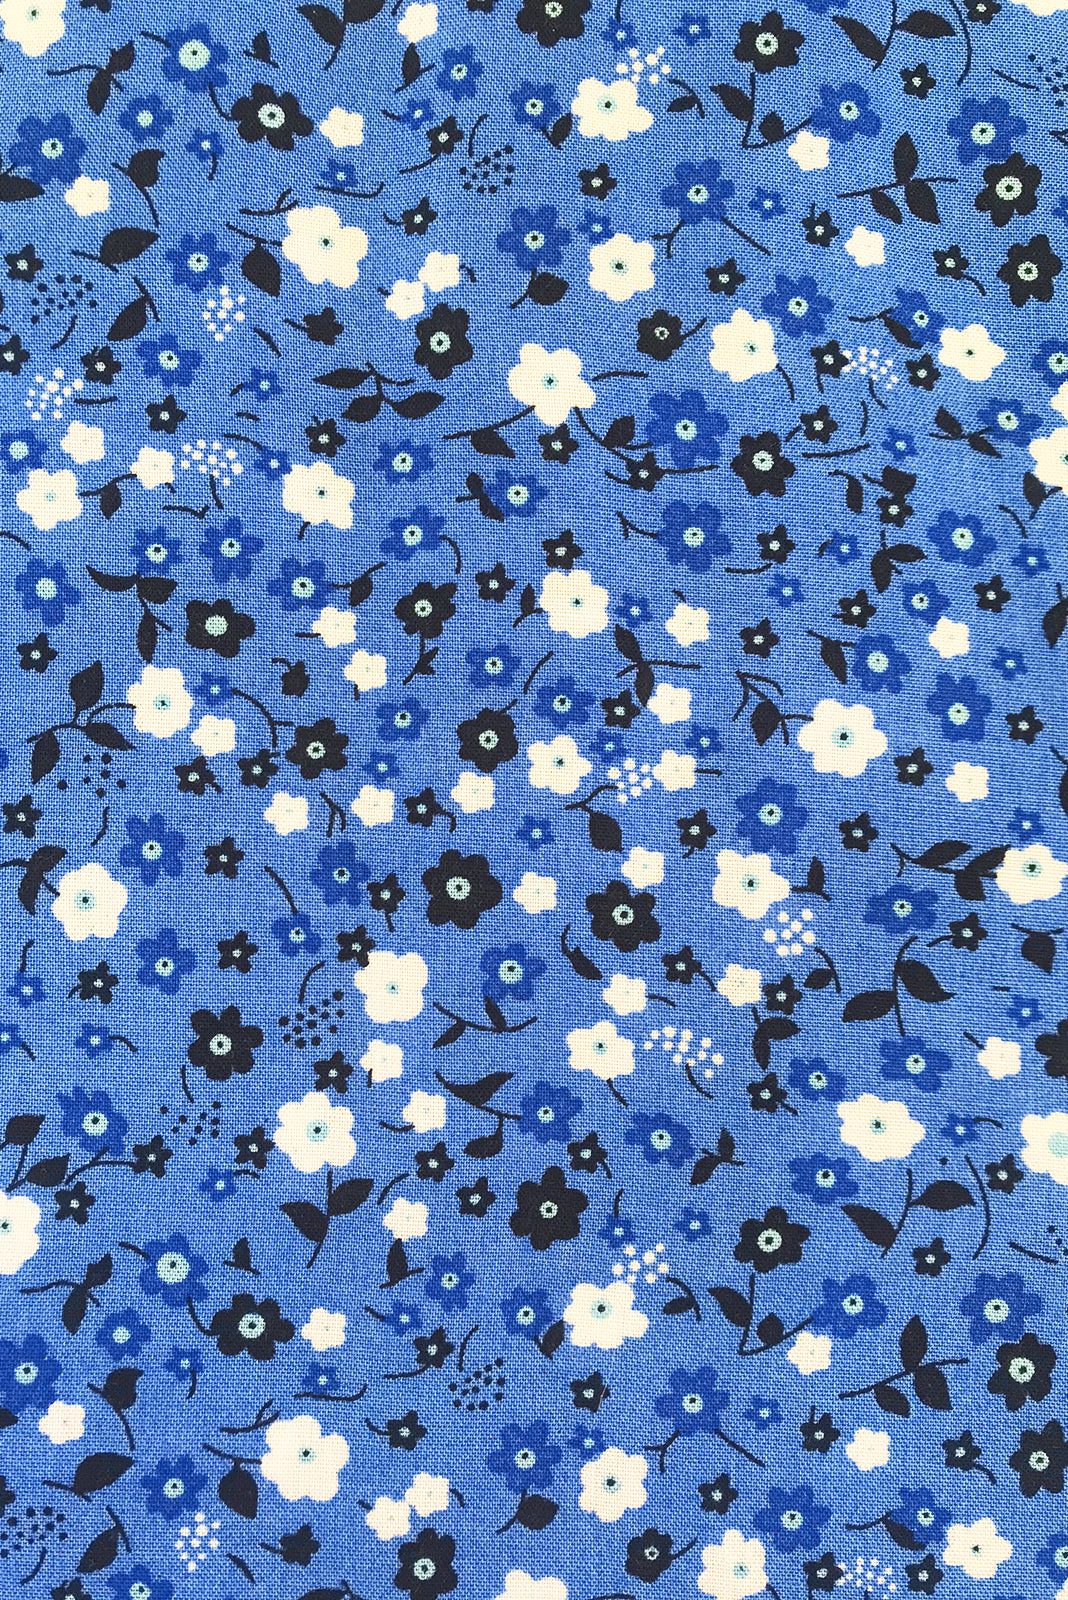 Fabric swatch of Lizzie Azure Flowers Dress featuring 100% rayon in azure blue base with ditzy floral print.